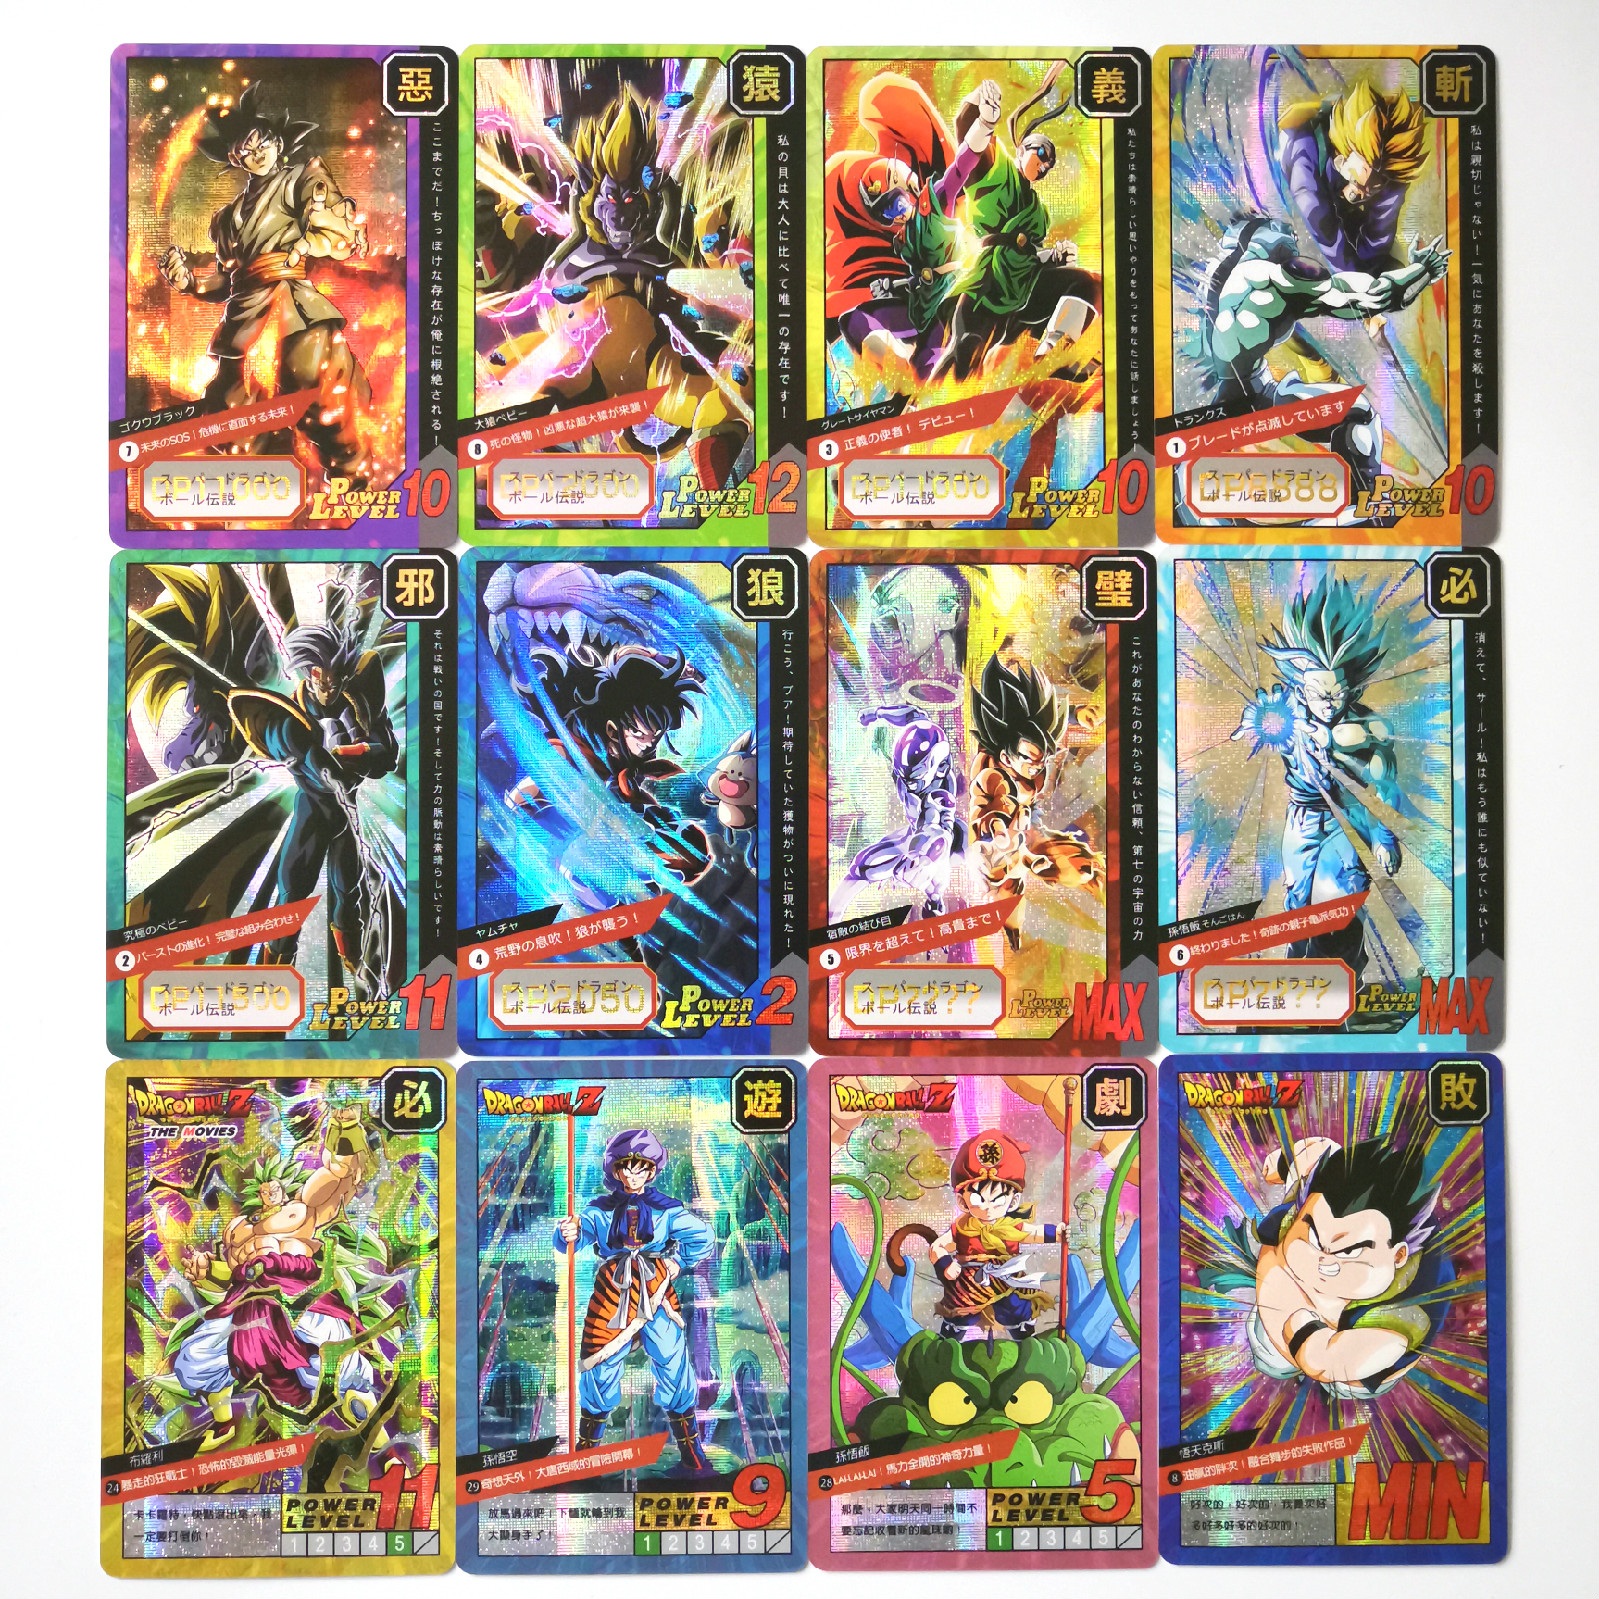 New 55pcs/set Super Dragon Ball 9 Ni 1 Sets Heroes Battle Card Ultra Instinct Goku Vegeta Game Collection Anime Cards